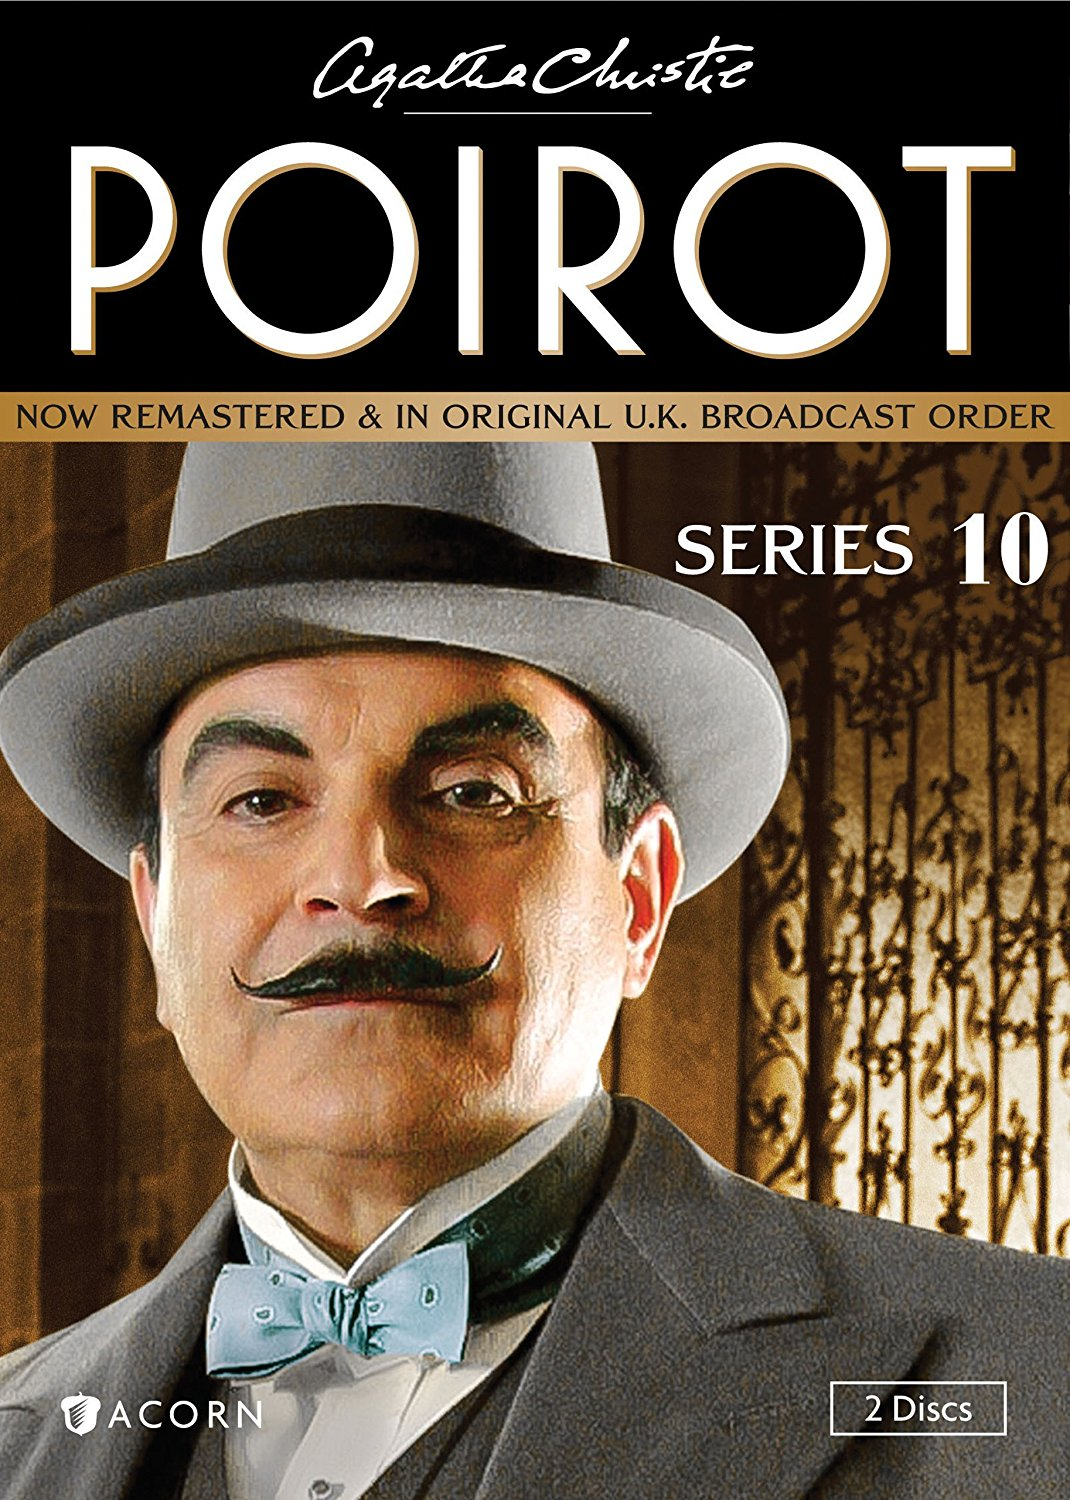 Agatha Christie's Poirot (2006) S10E02: Cards on table